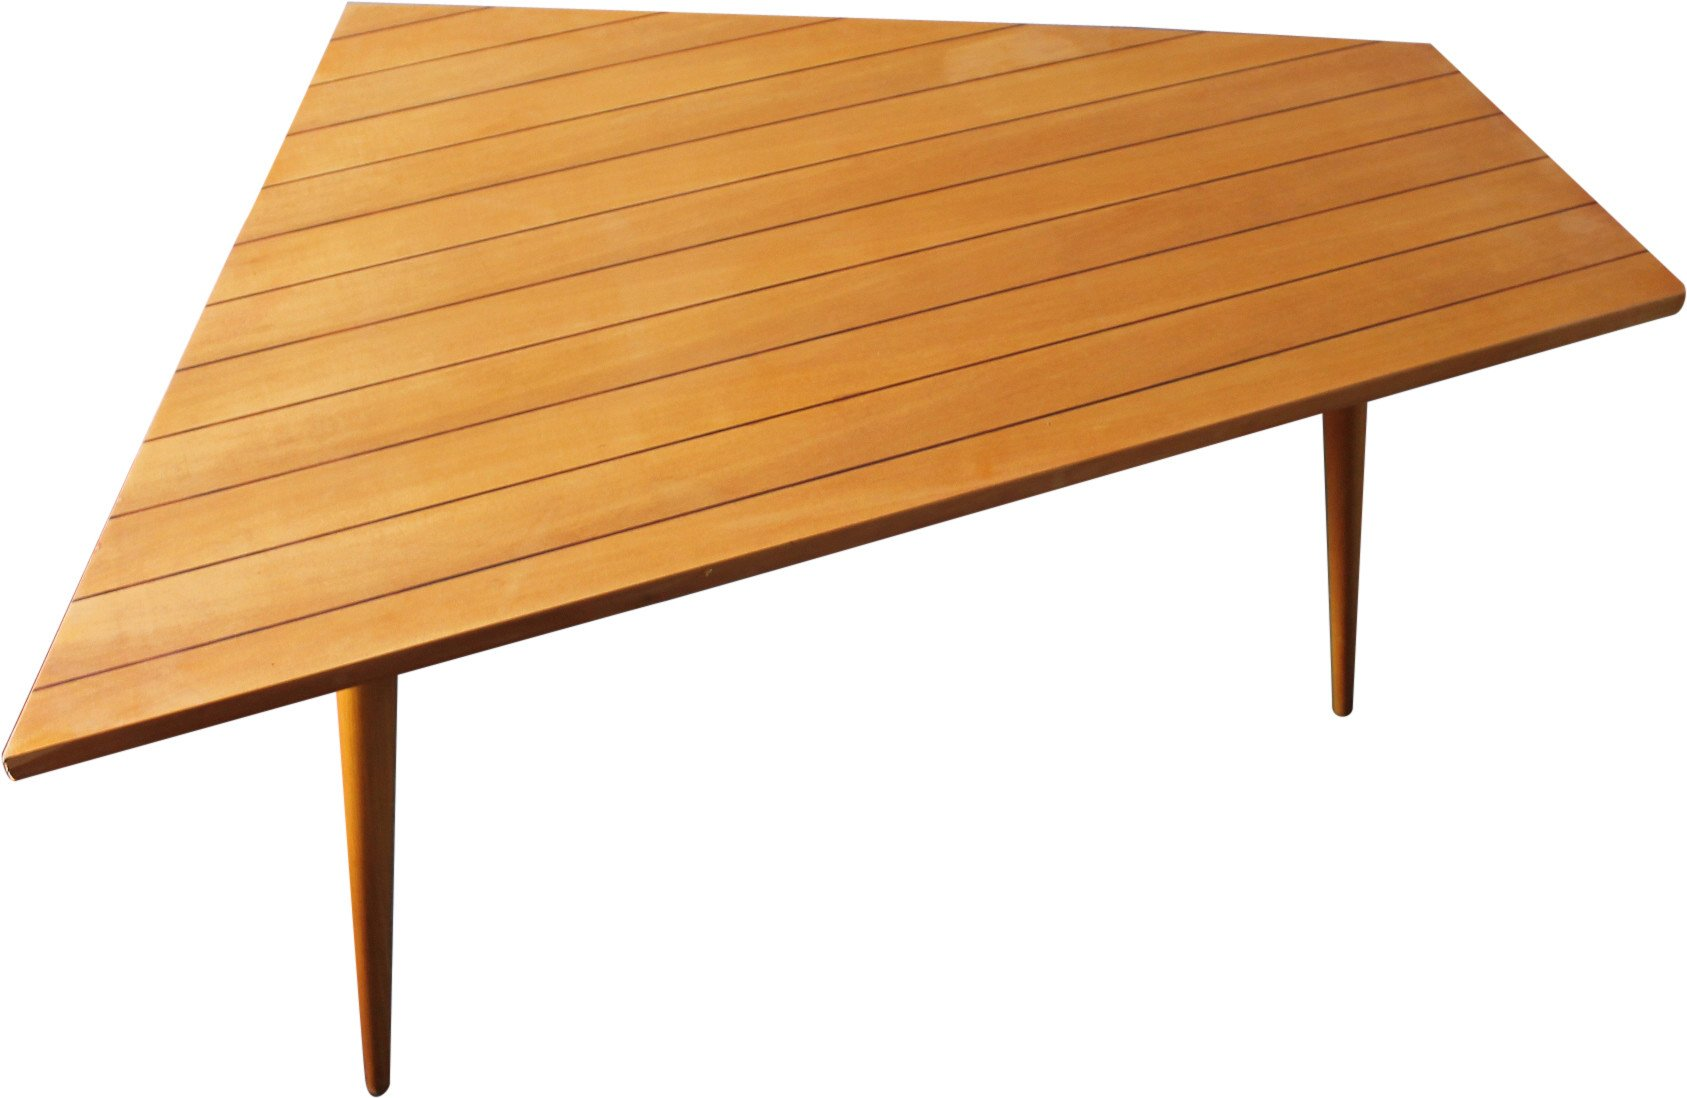 Coffee Table, Intasia Schmidt & Co, Germany, 1970s